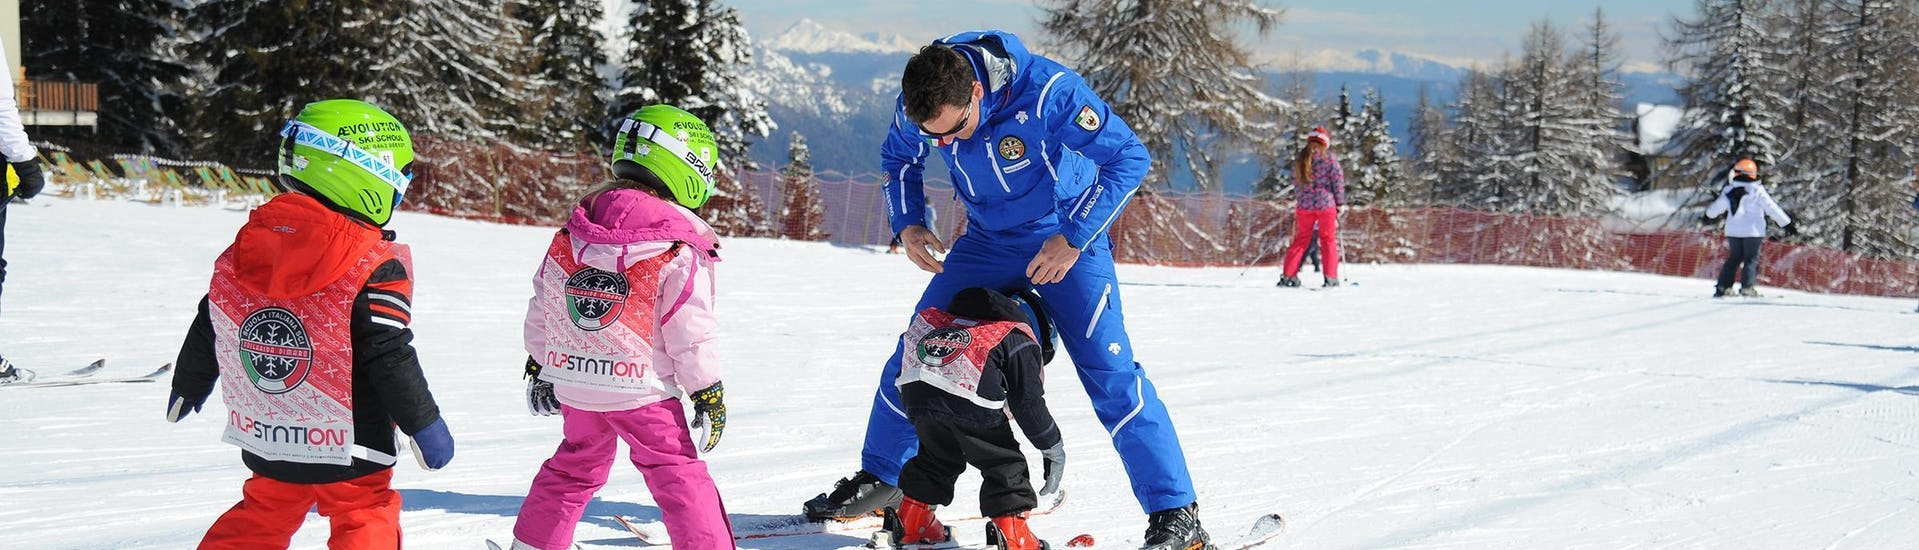 Kids Ski Lessons (3-5 years) - First Timer of Folgarida Dimaro Ski School are taking place, the children are training on the slopes of Val di Sole with the ski instructor.